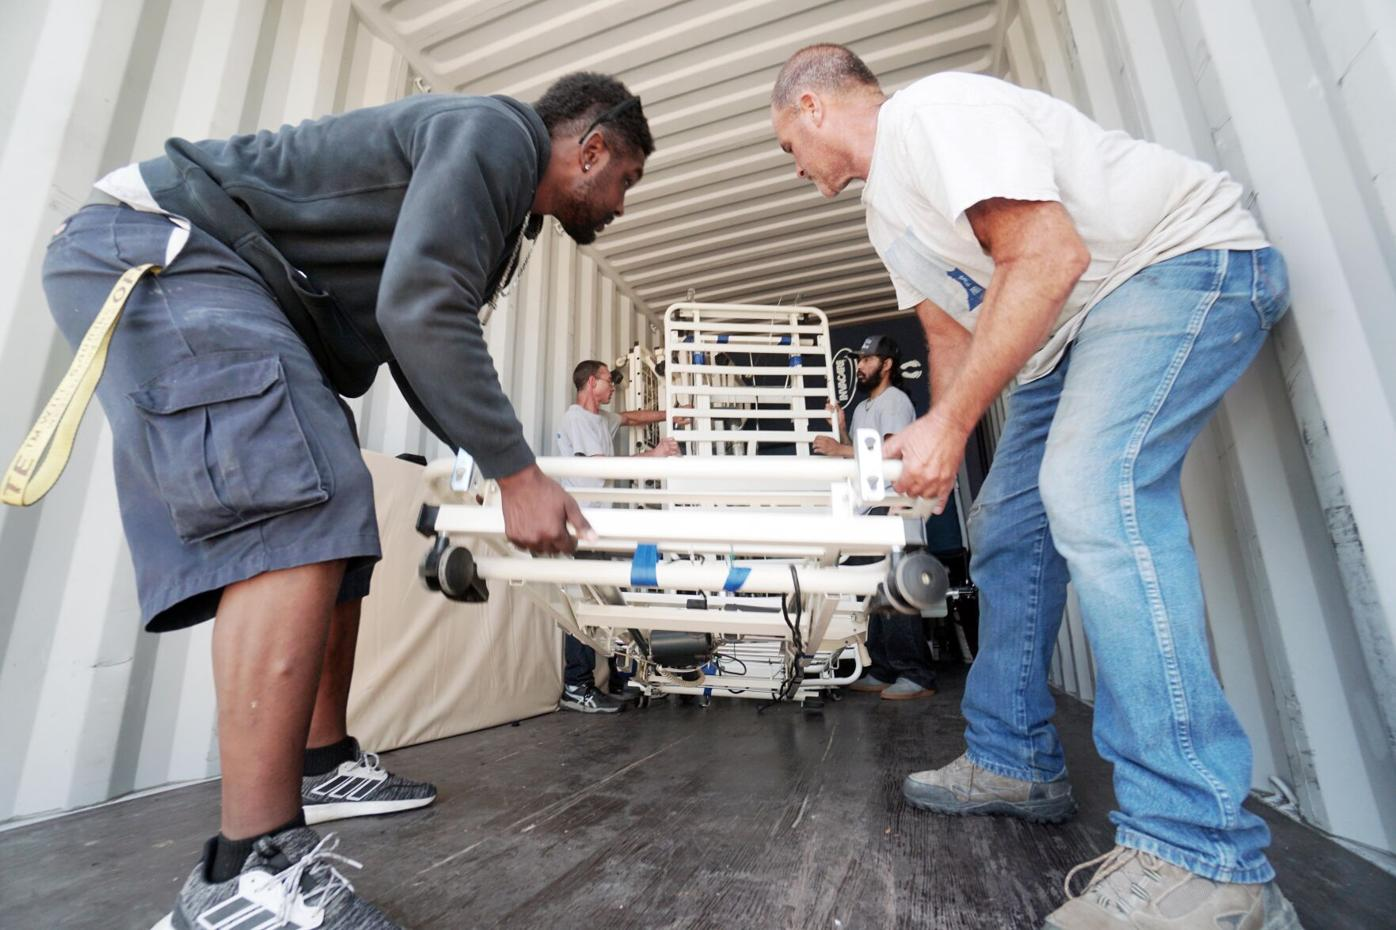 Movers pack beds into truck